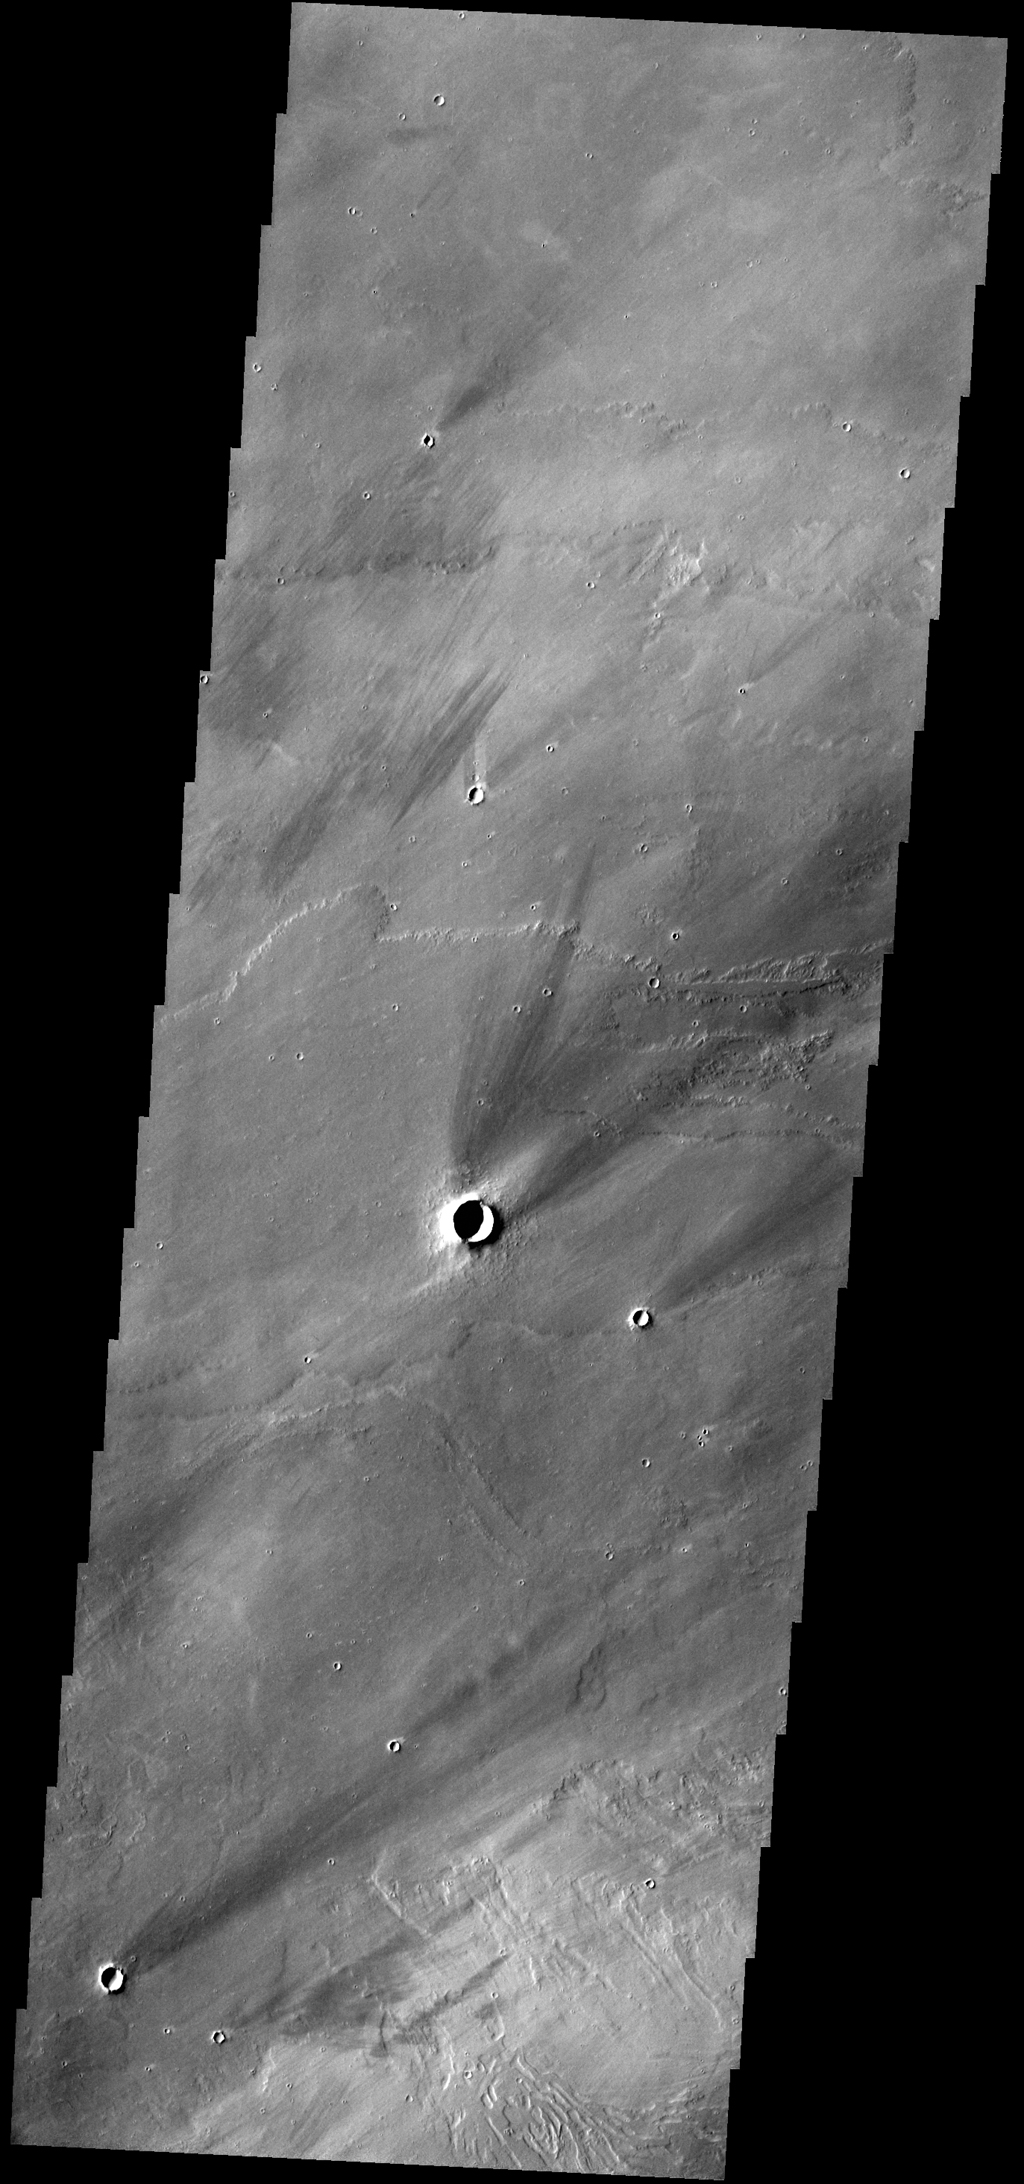 The windstreaks in this image from NASA's 2001 Mars Odyssey spacecraft are located on the lava plains between Pavonis Mons and Noctis Fossae.